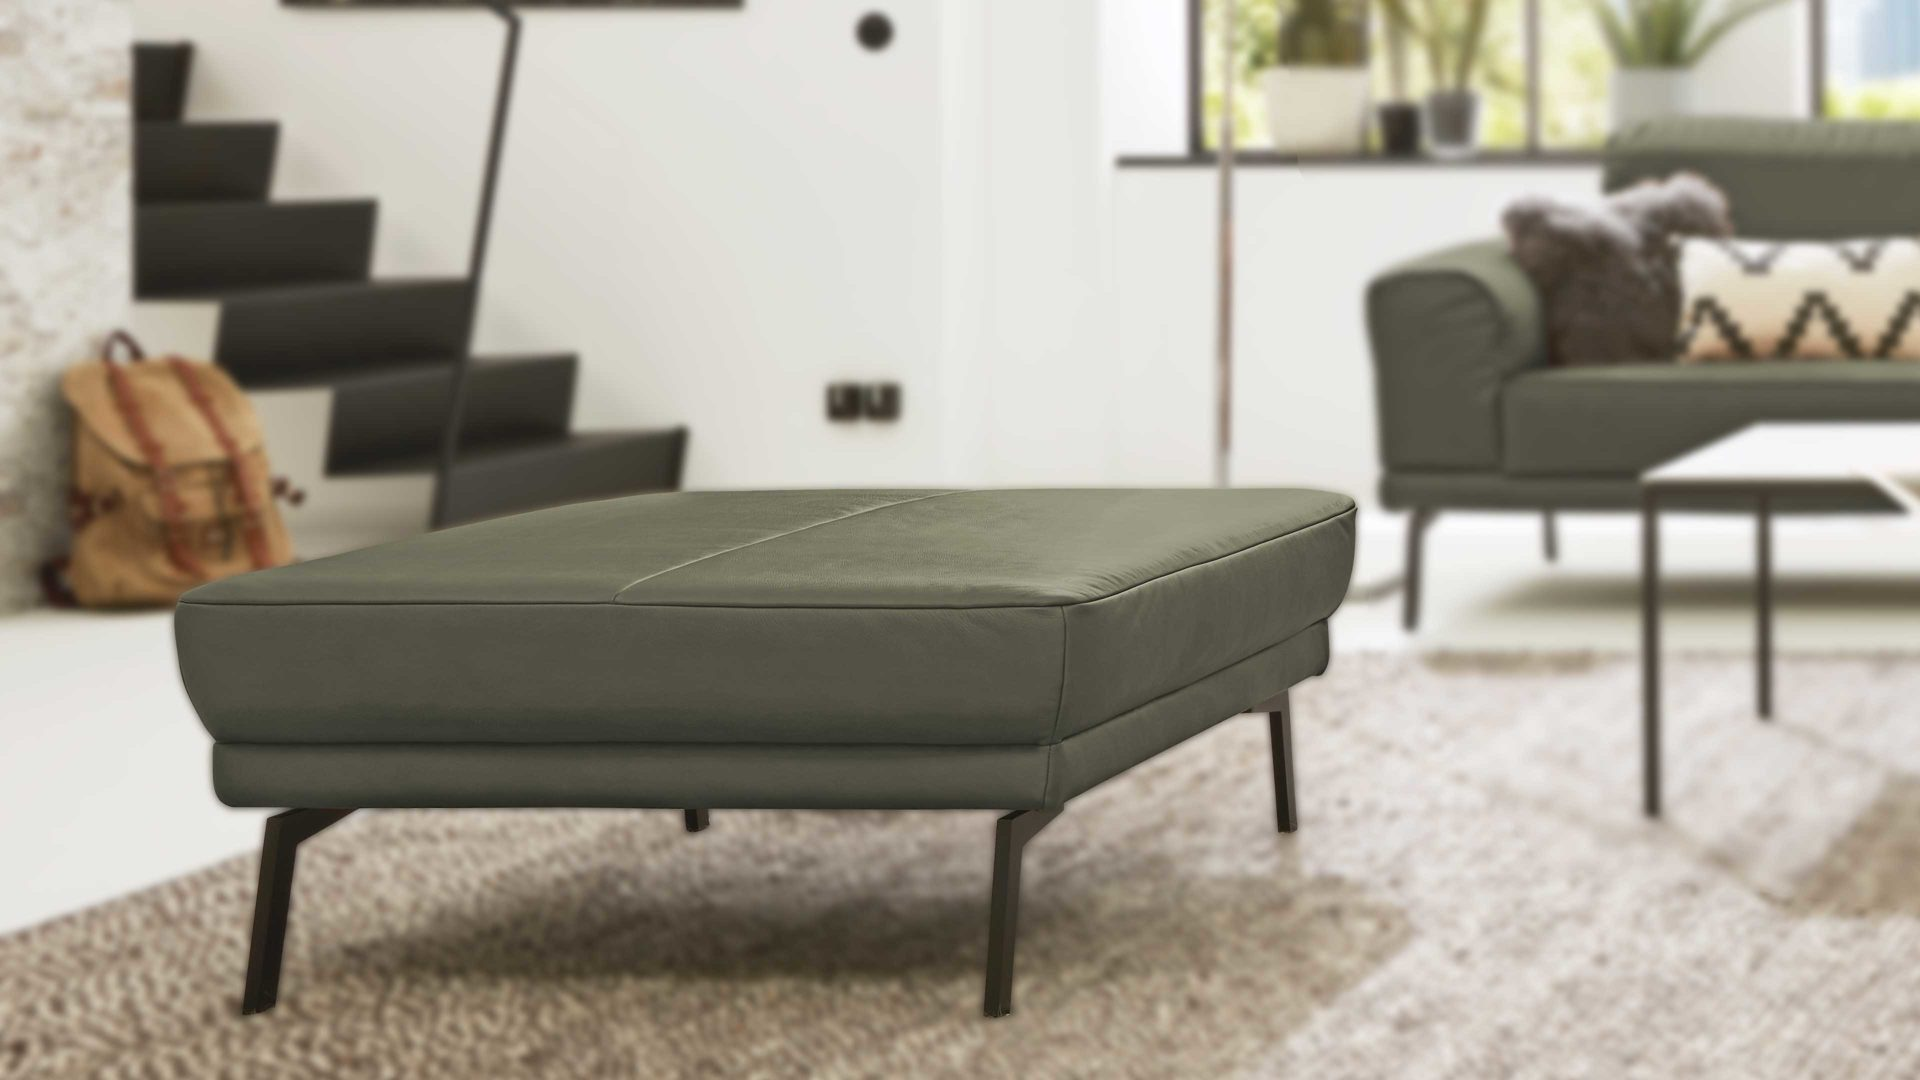 Hocker Interliving aus Leder in Grün Interliving Sofa Serie 4102 – Hocker olivfarbenes Leder Mercury & schwarze Metallfüße - ca. 91 x 91 cm